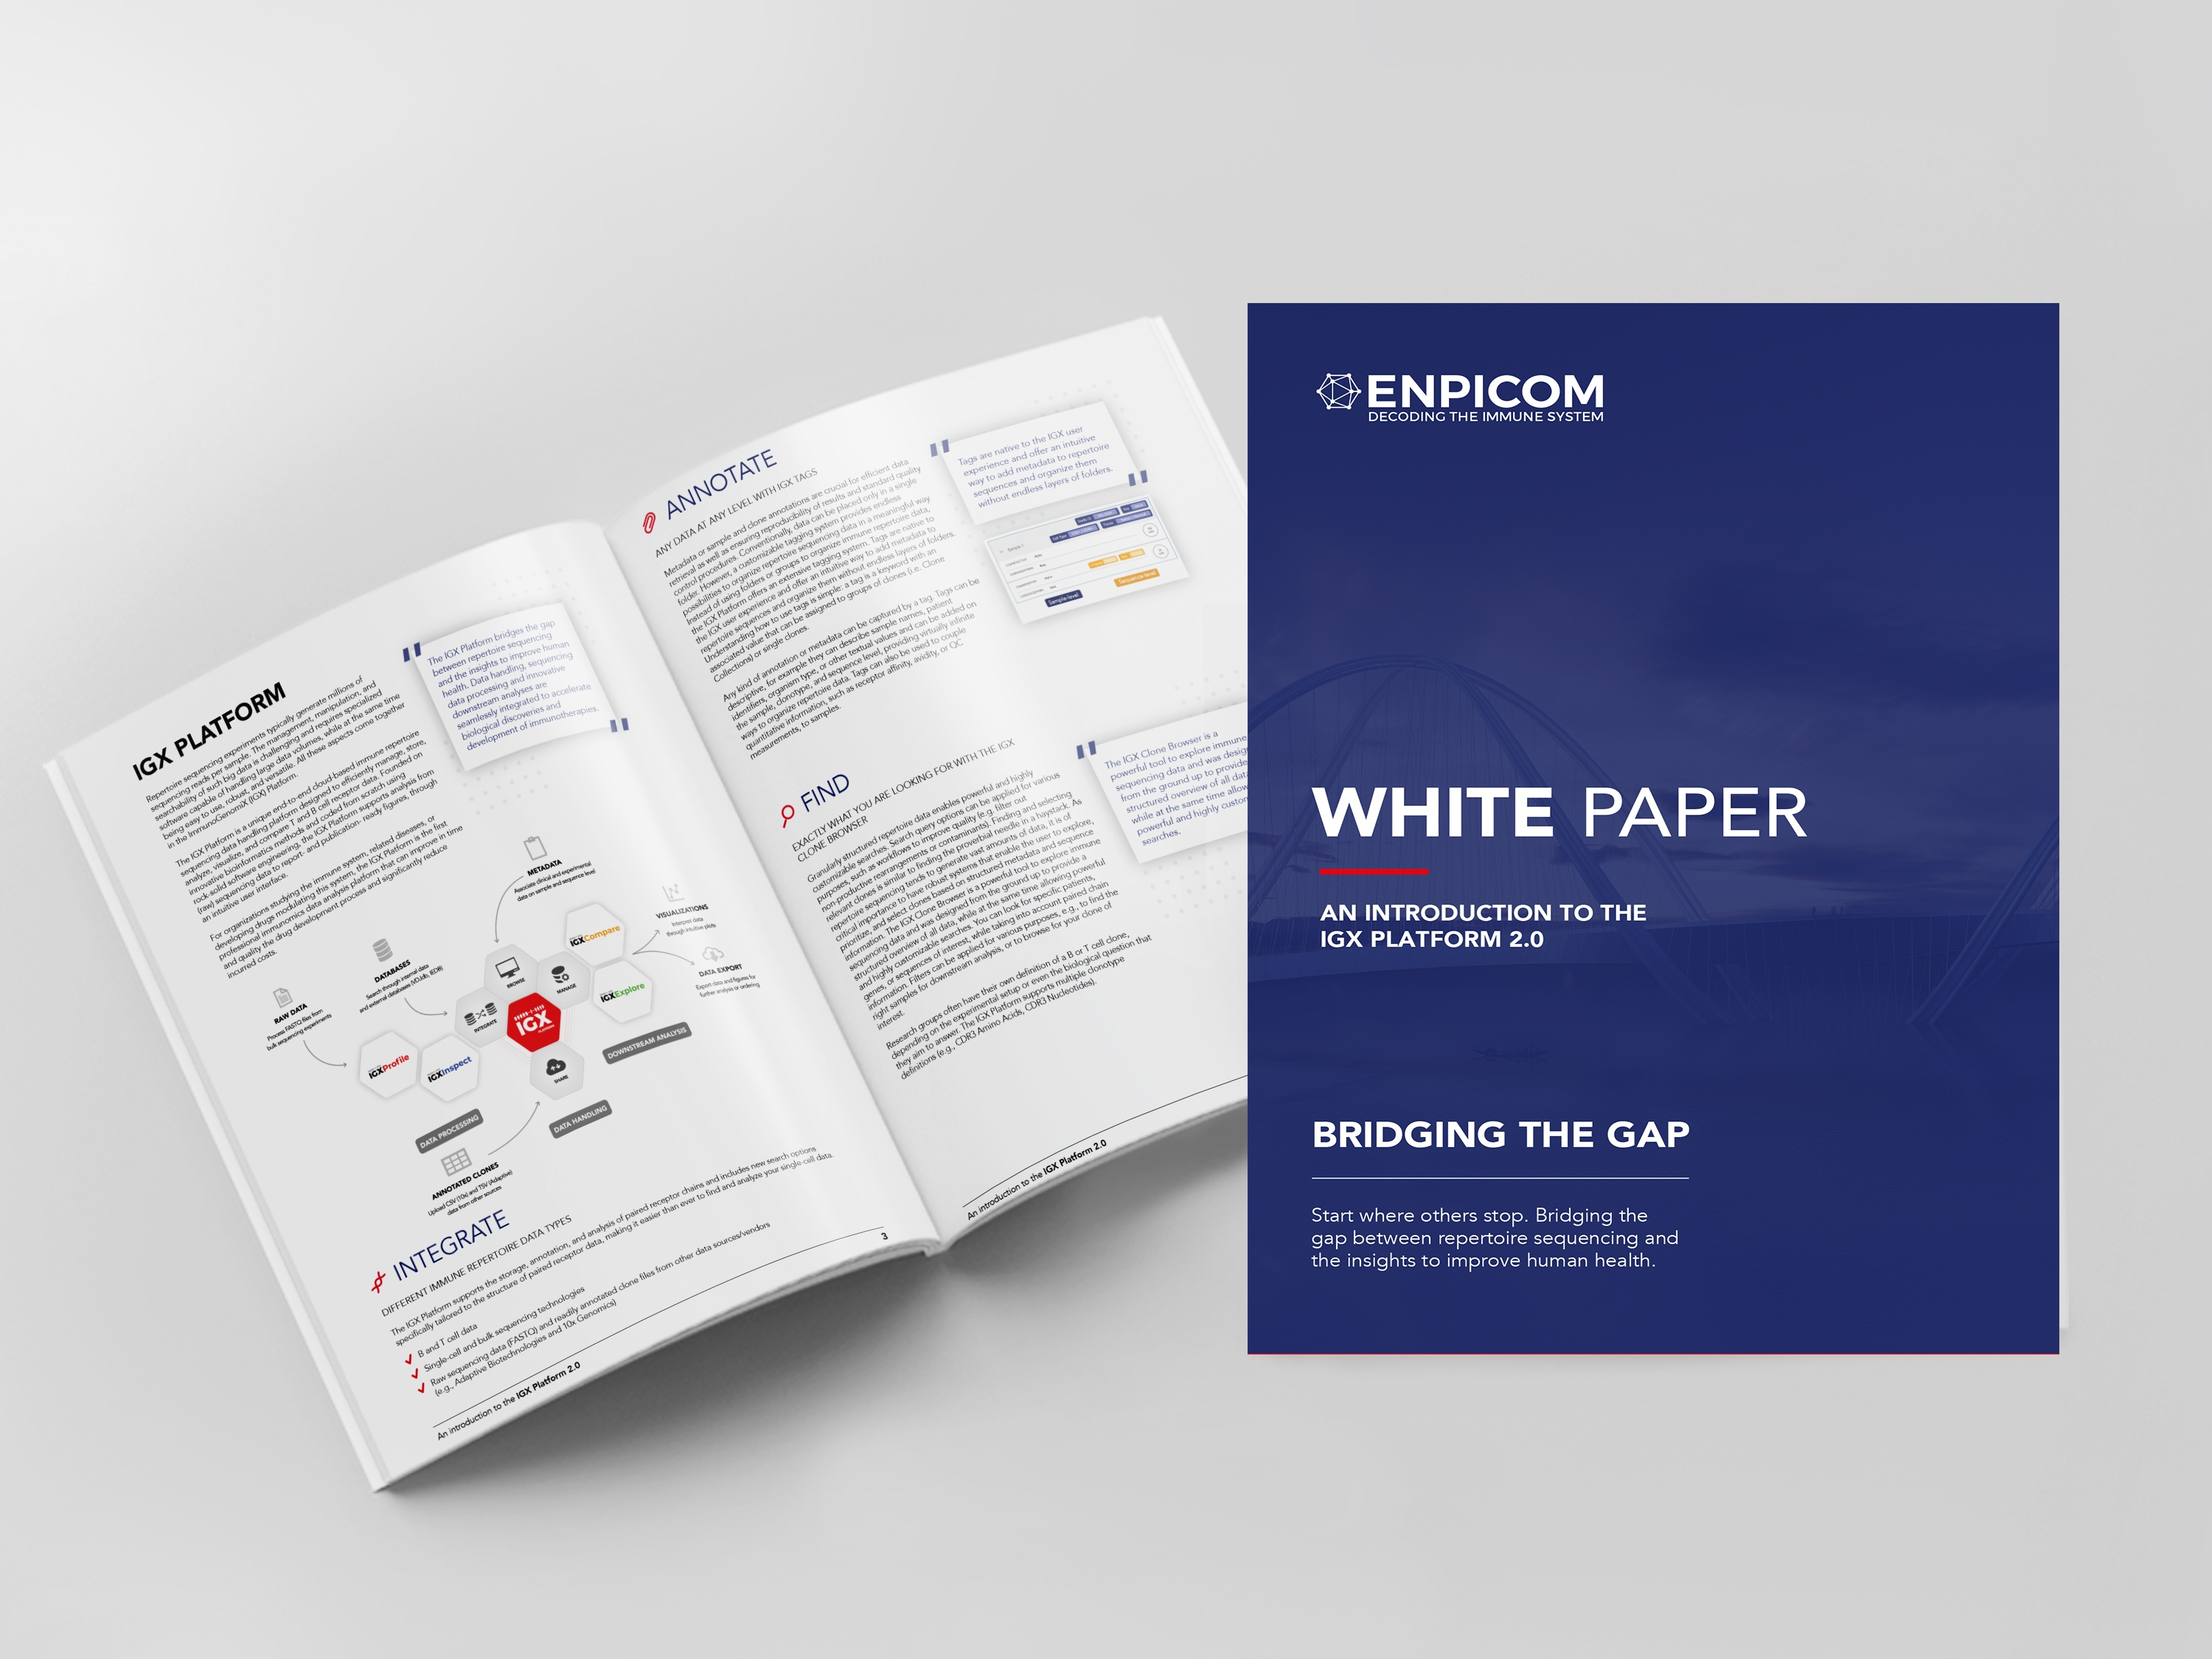 Whitepaper Introduction to IGX 2.1